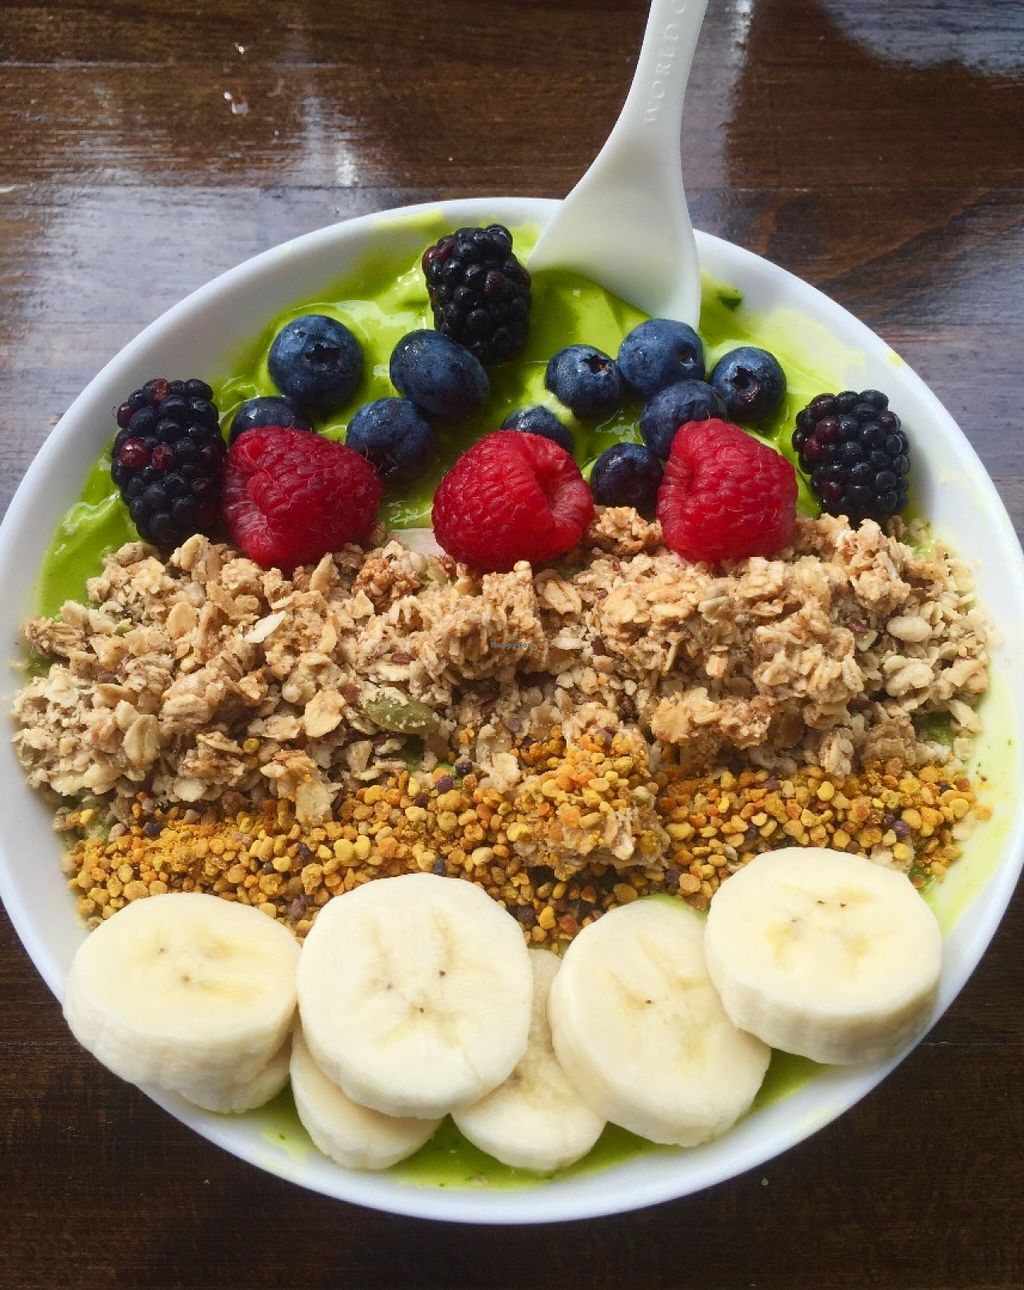 """Photo of Degree 18 Juice Bar  by <a href=""""/members/profile/zoomerwit"""">zoomerwit</a> <br/>Smoothie bowls <br/> June 13, 2016  - <a href='/contact/abuse/image/75056/153777'>Report</a>"""